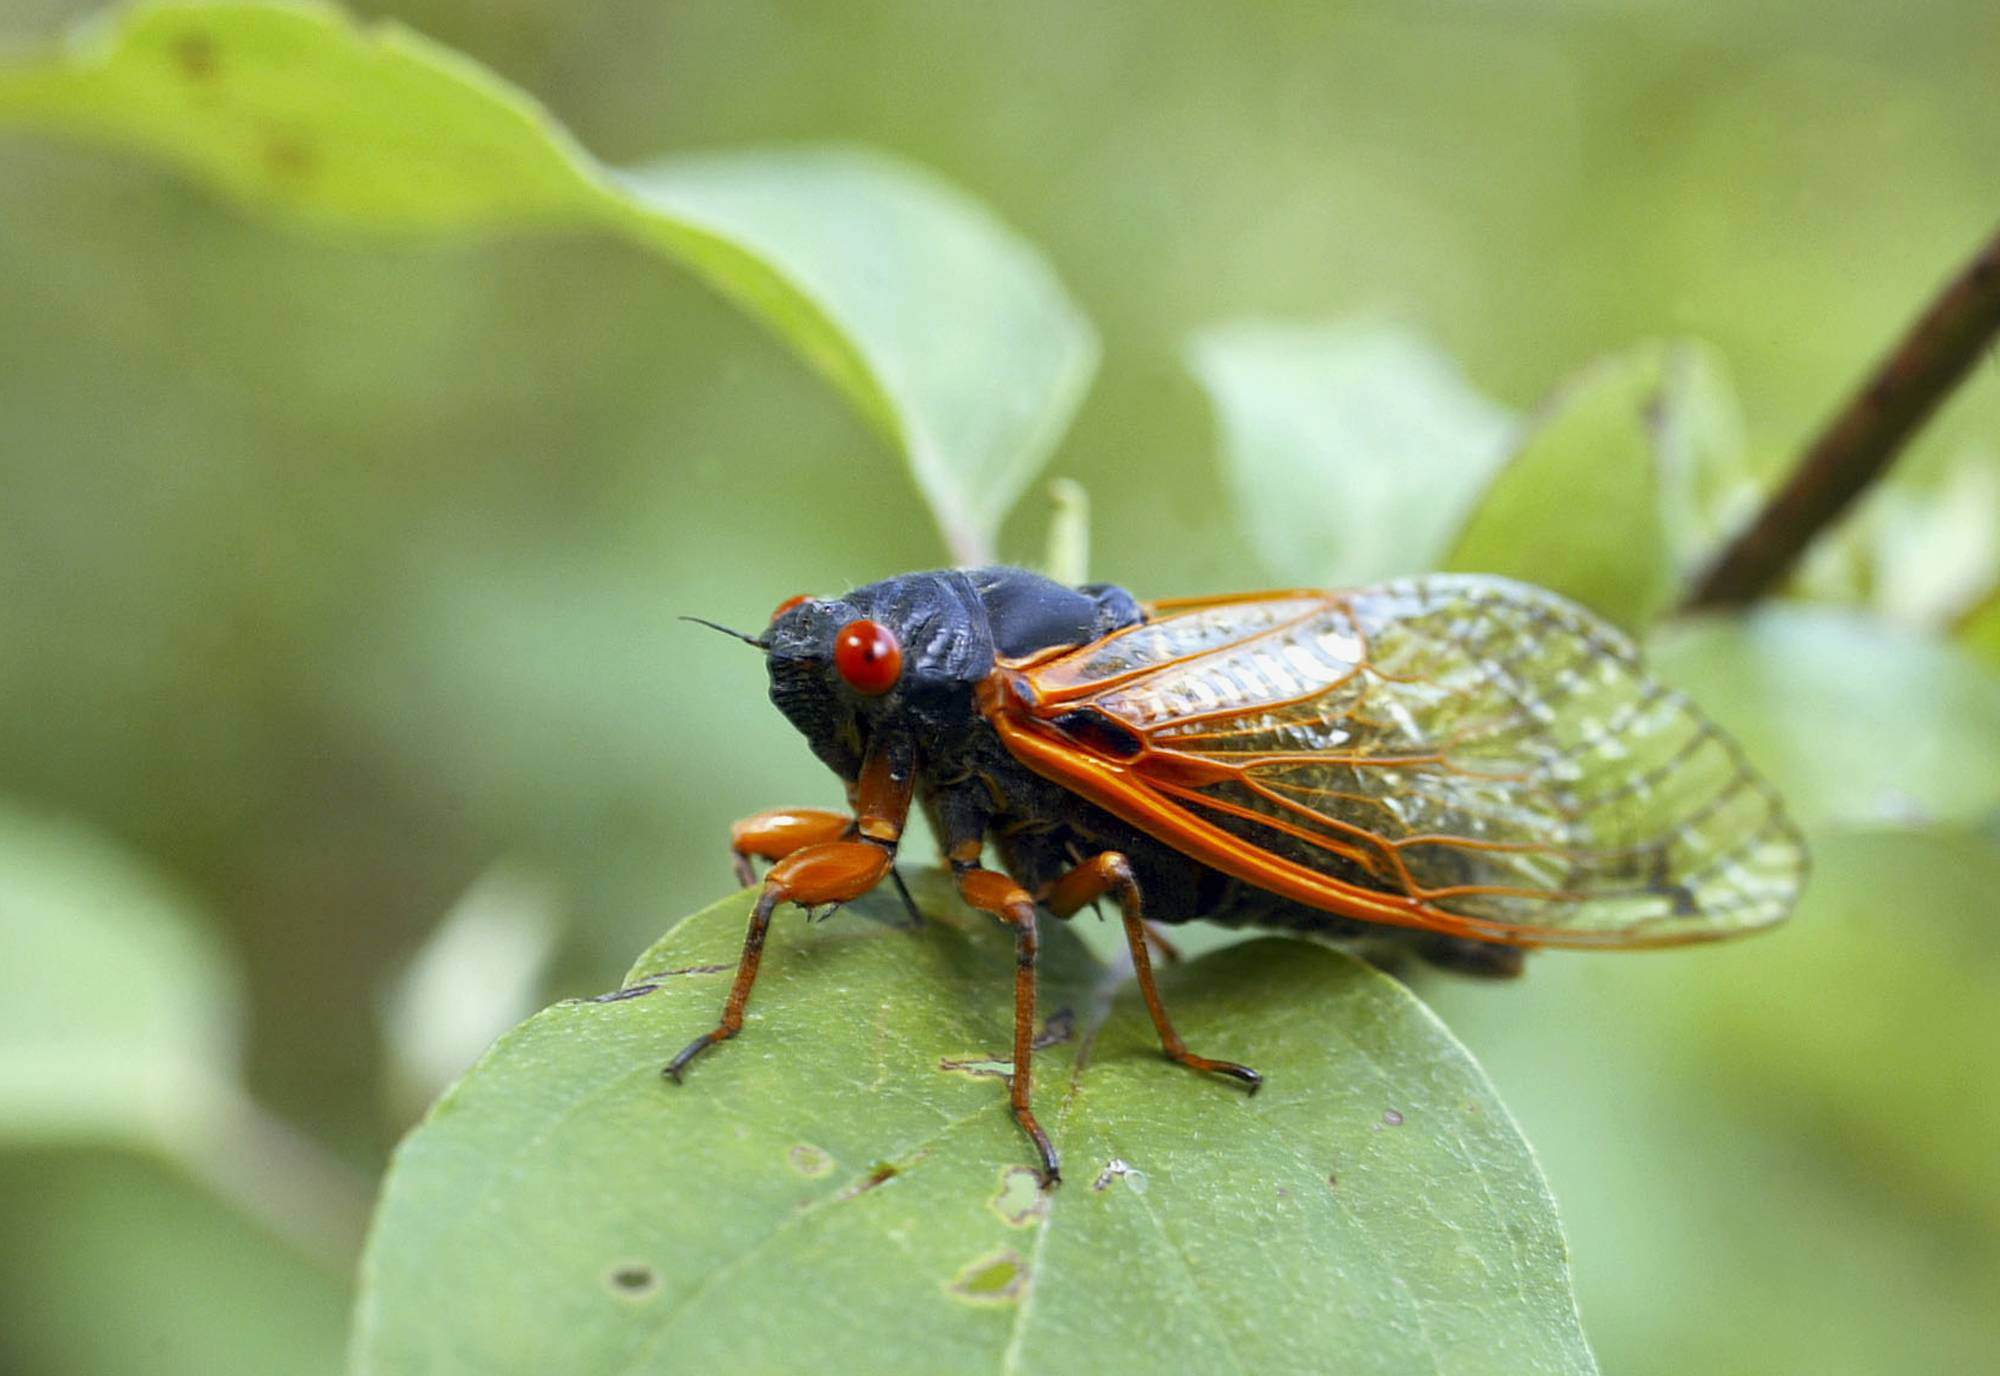 Cicadas should start emerging this weekend. The 17-year hatch should be most noticeable in western Illinois, Missouri and southeastern Iowa.